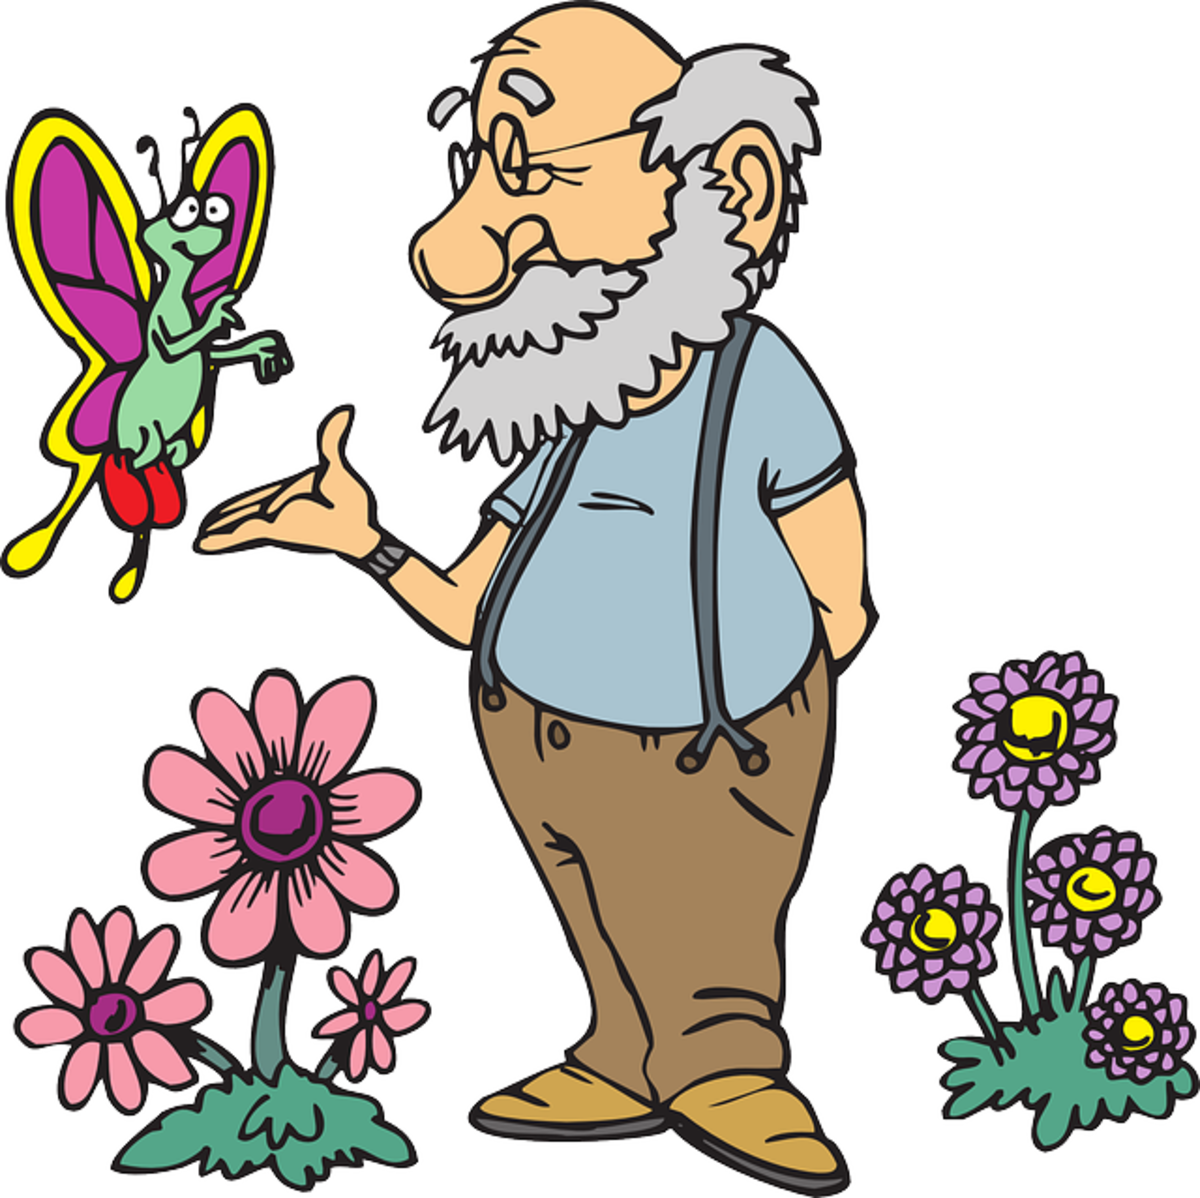 Man Making Friends with a Butterfly